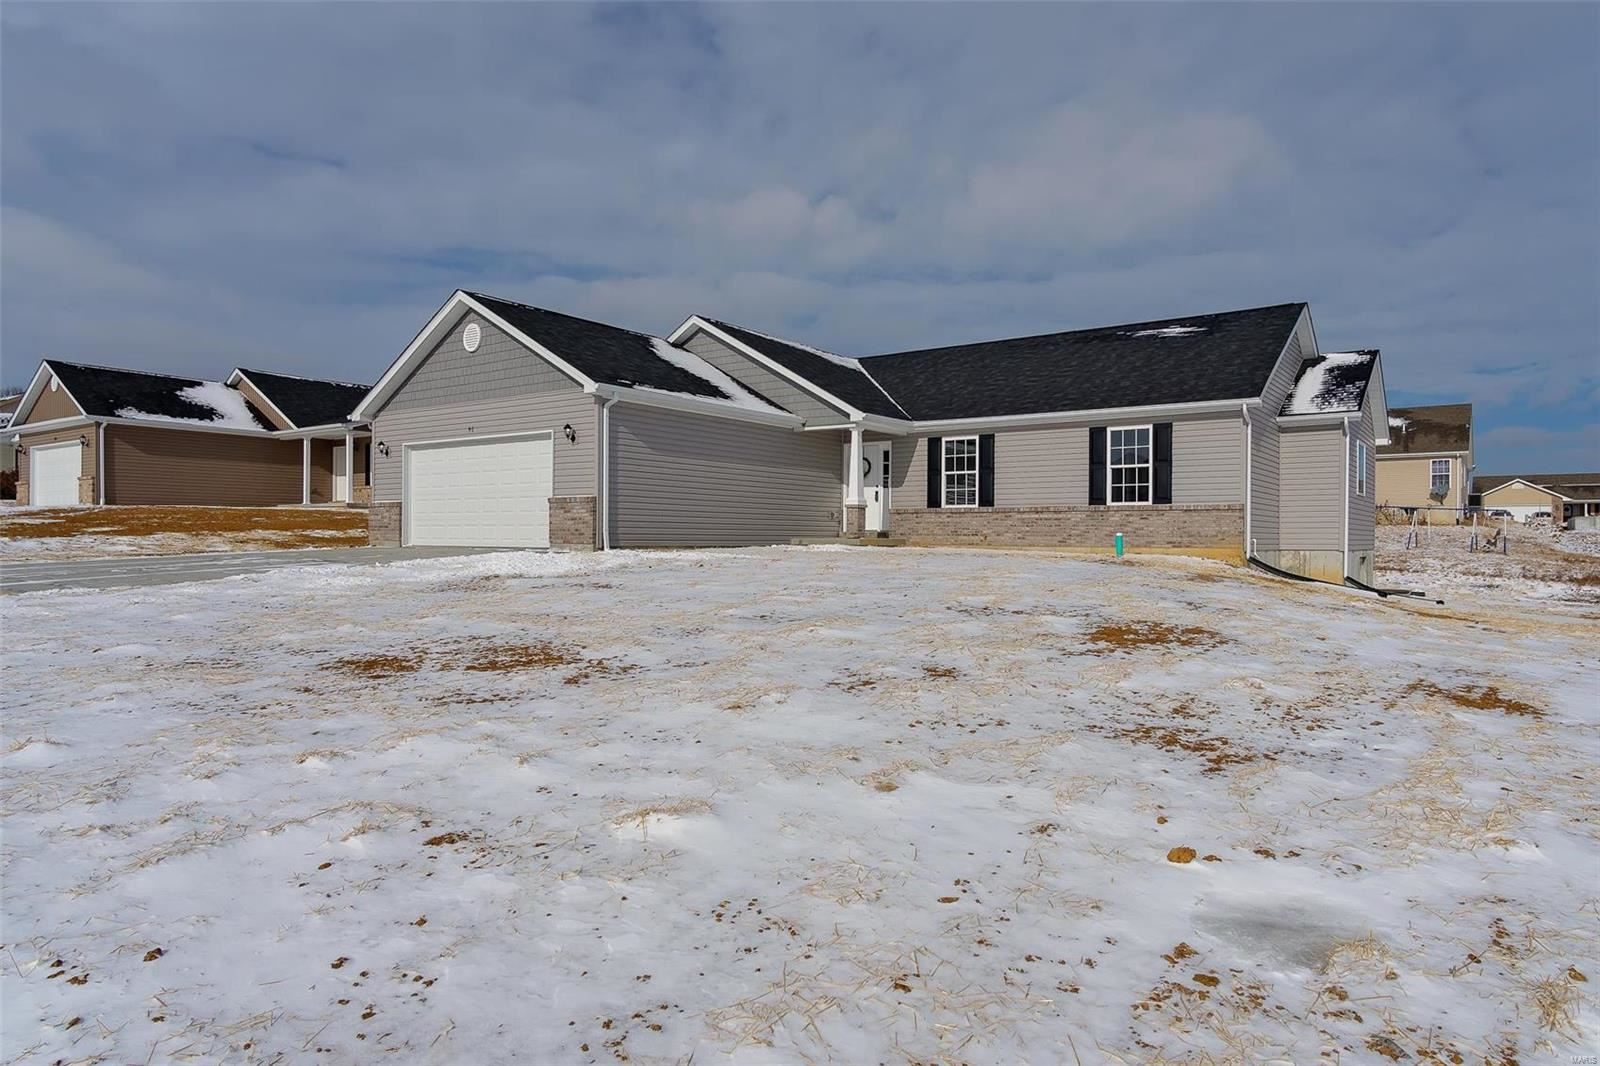 47 Rockport Court, Troy, MO 63379 - MLS#: 21011682